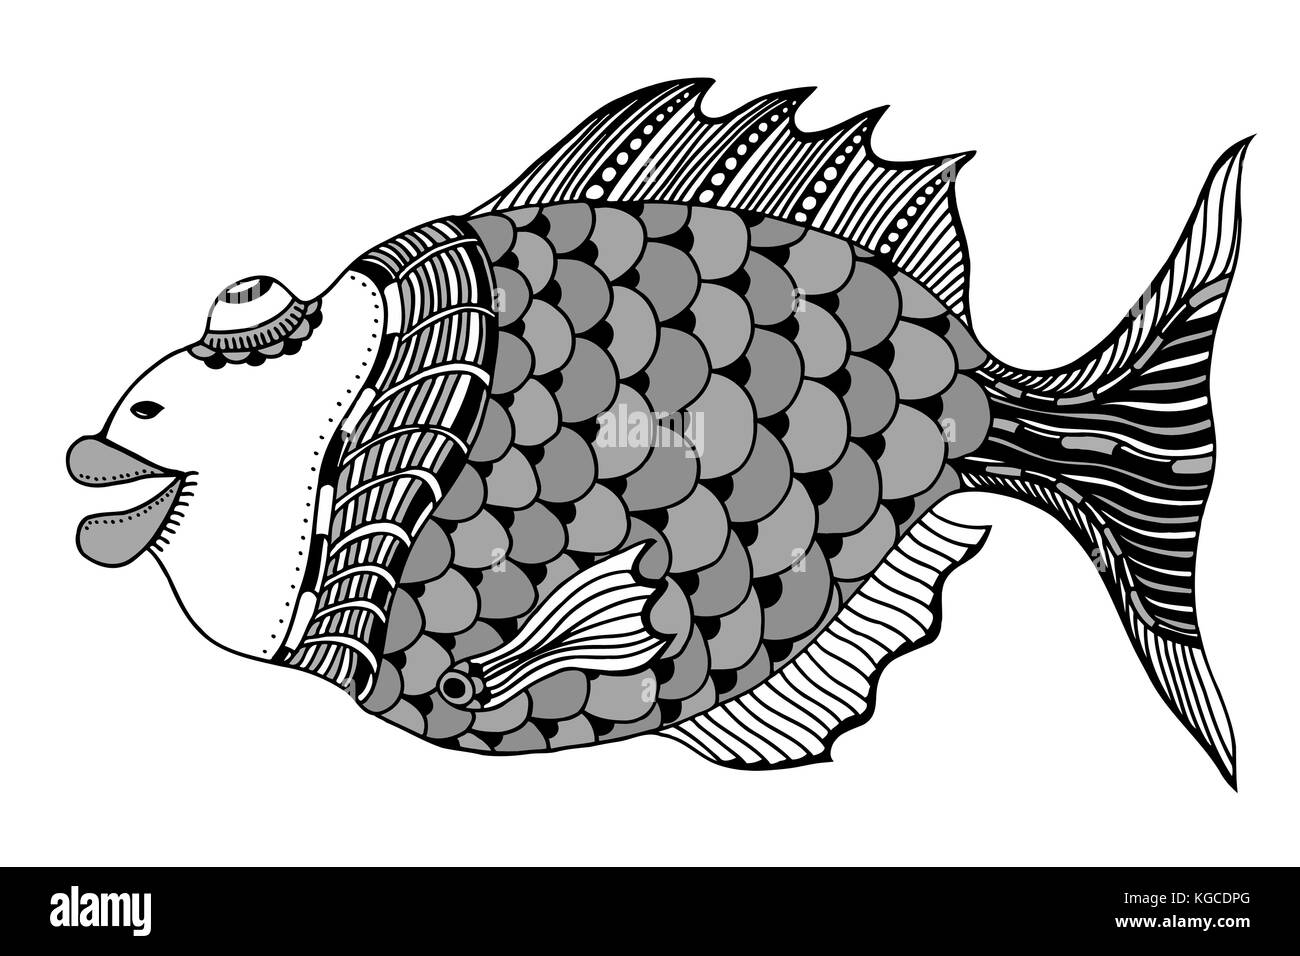 hand drawn fish, vector doodle illustration. Motive of sea life - Stock Image